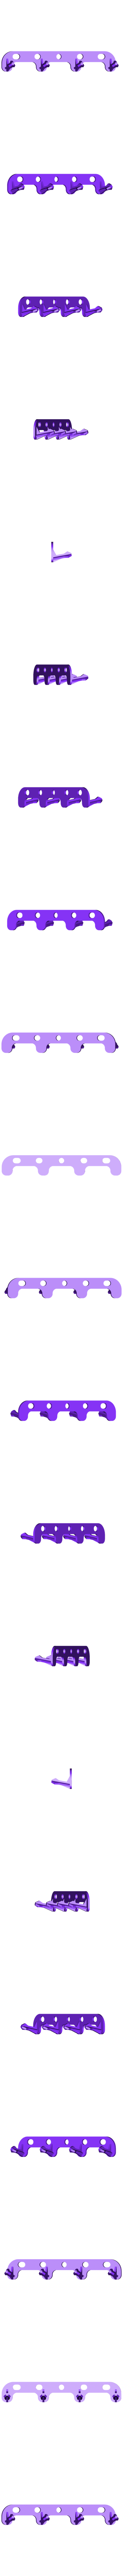 tool_holder_M_4-up.stl Download free STL file Tool holder (pegboard or wall mounted) • 3D printable object, FrankLumien